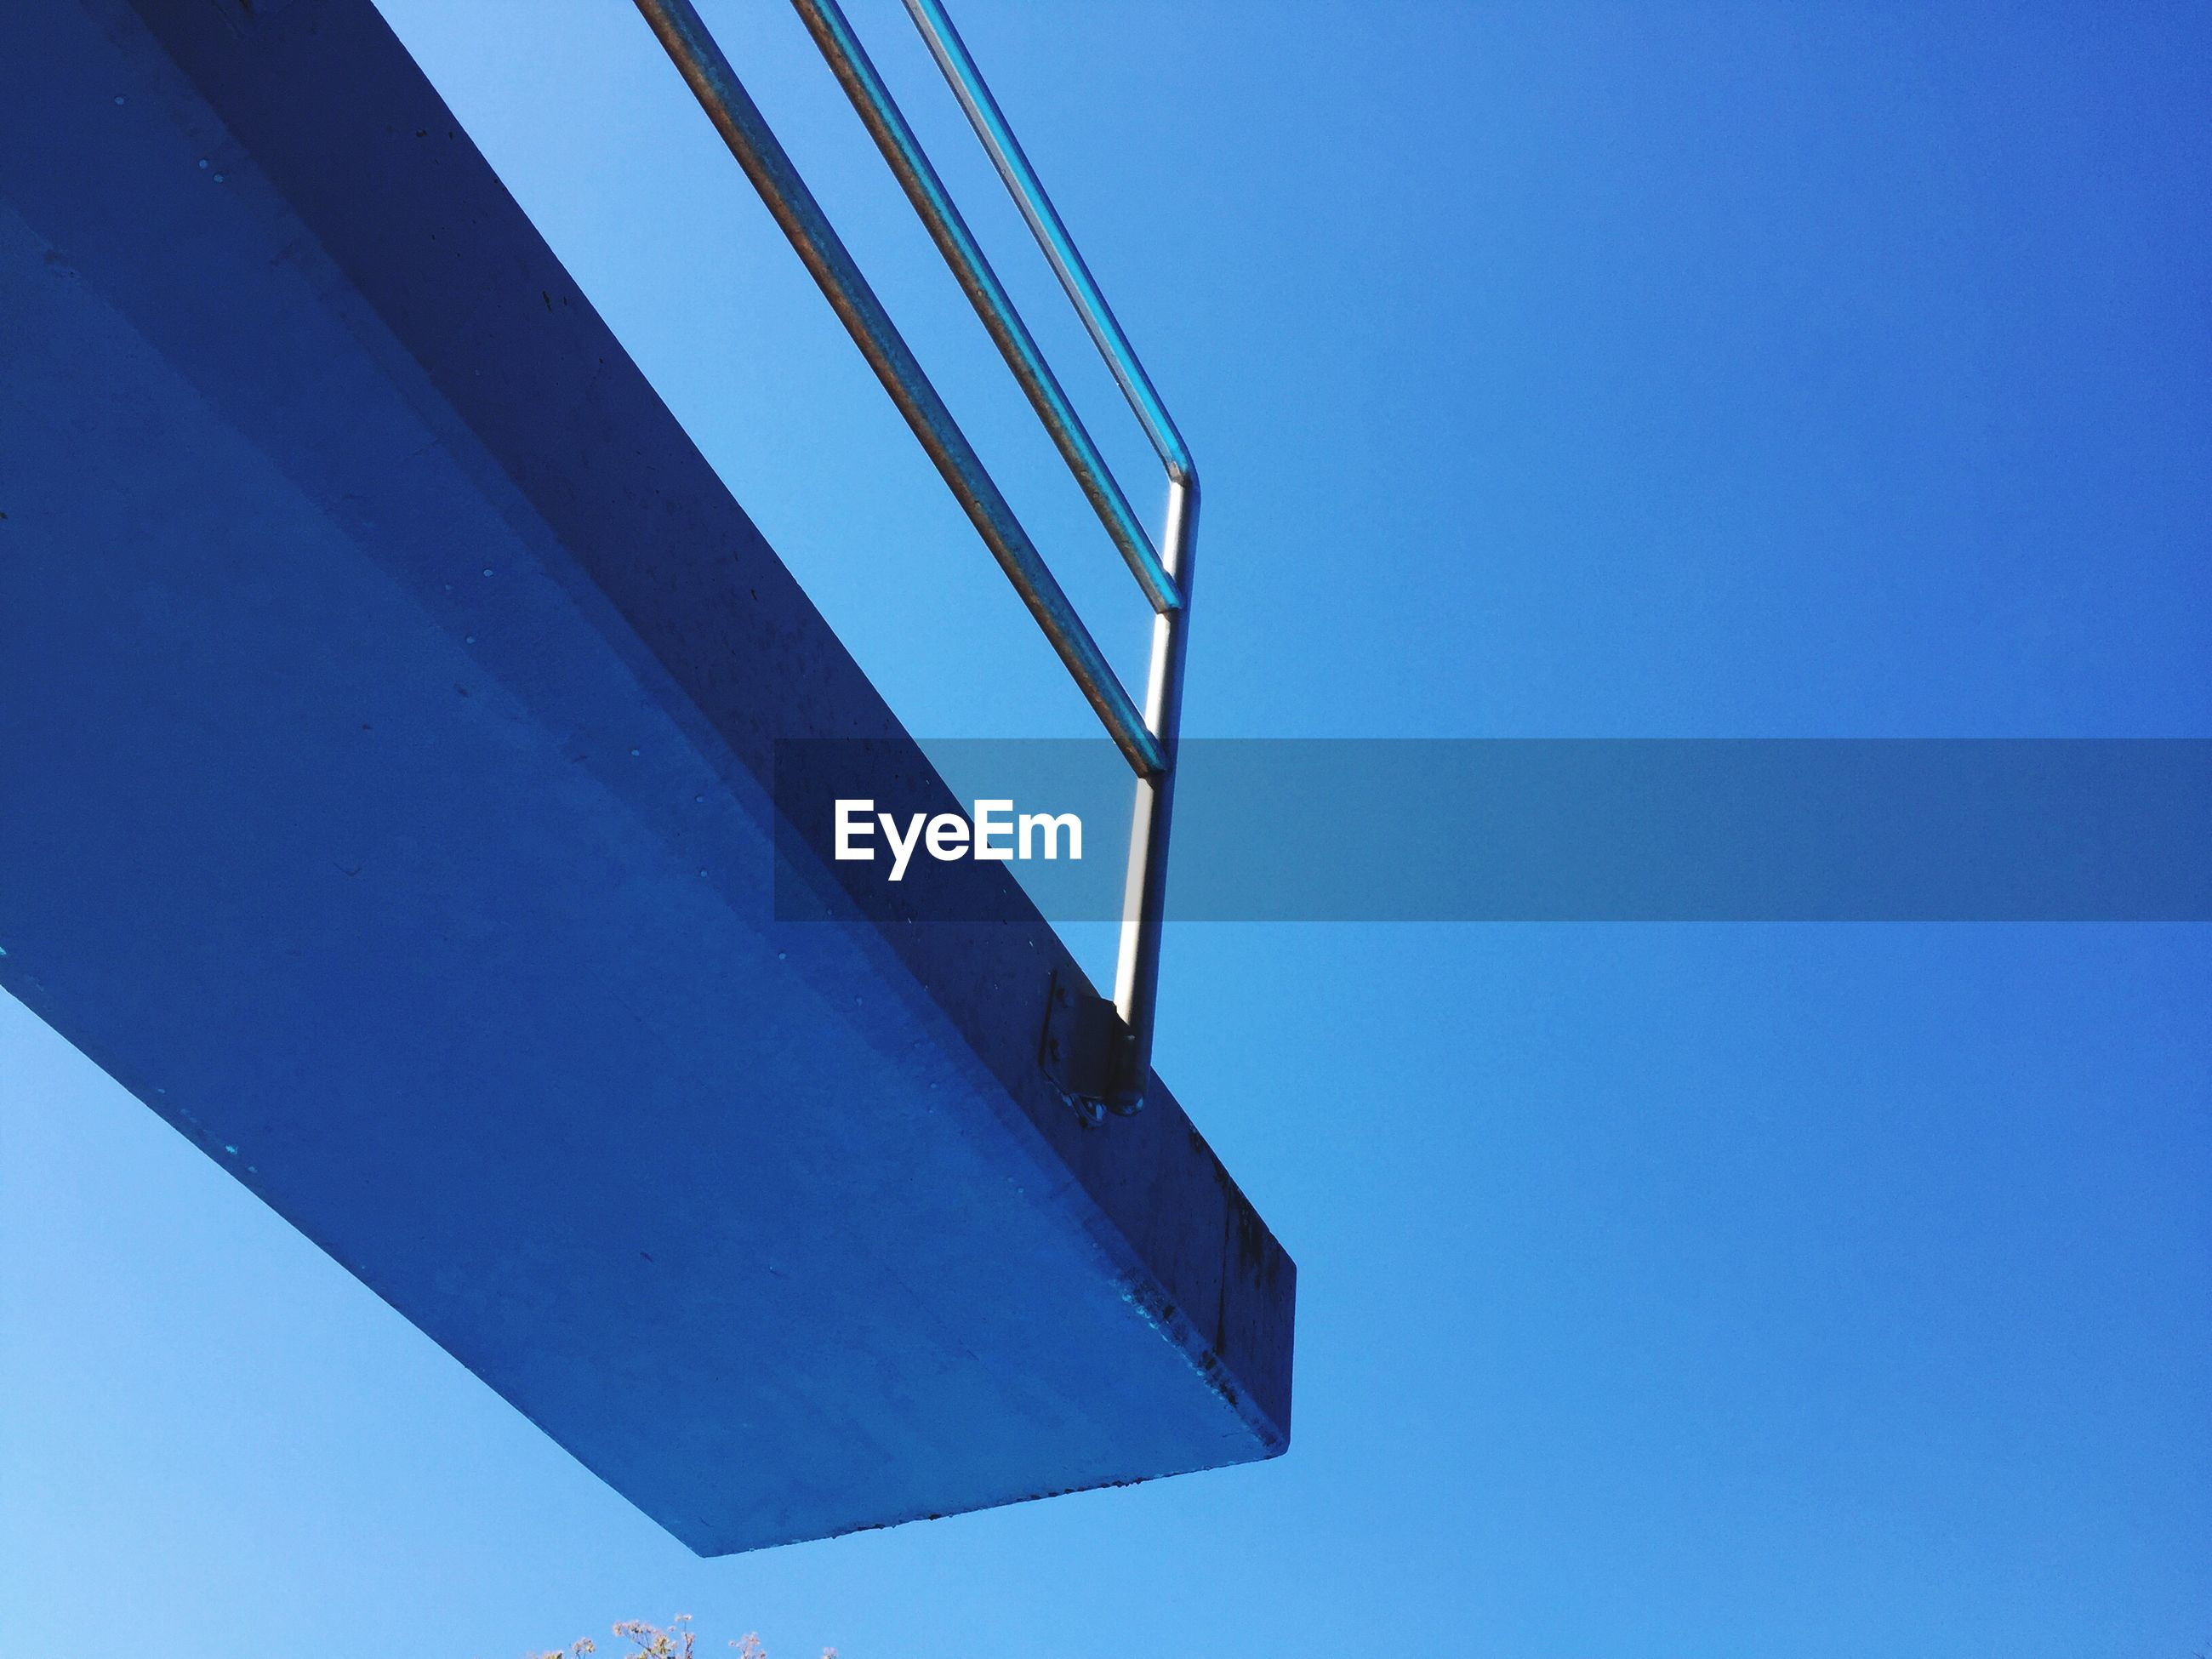 Low angle view of diving platform against clear blue sky